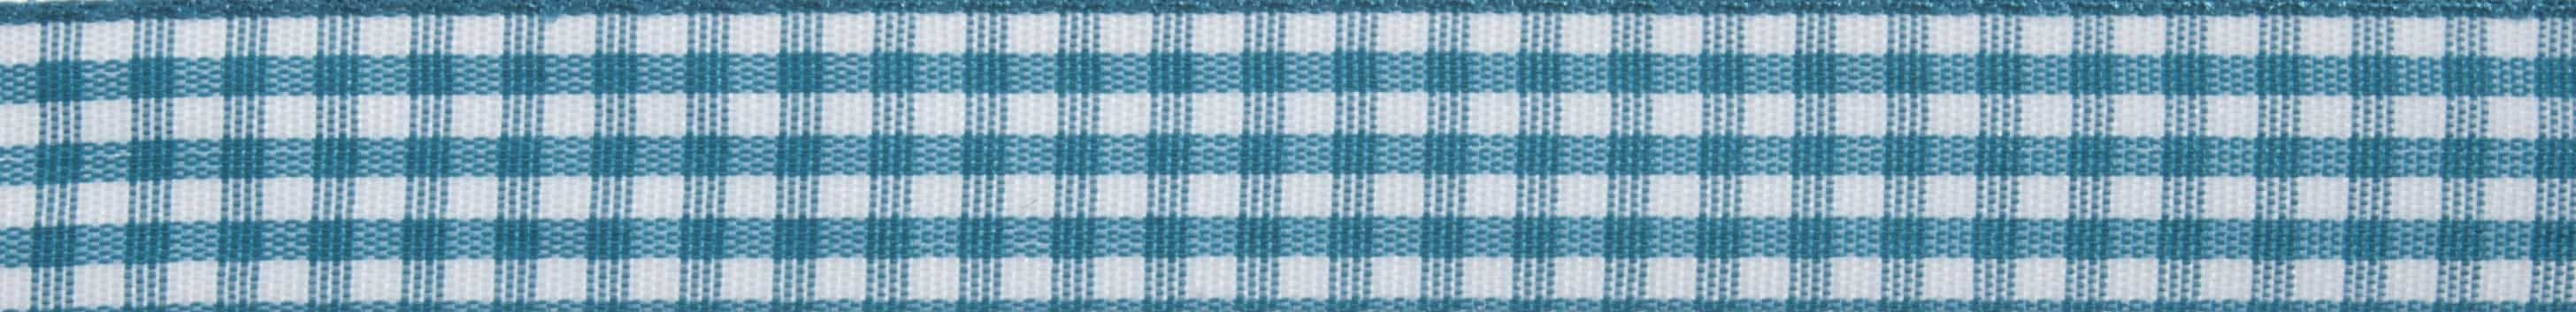 15mm Teal Gingham Ribbon 5m Reel